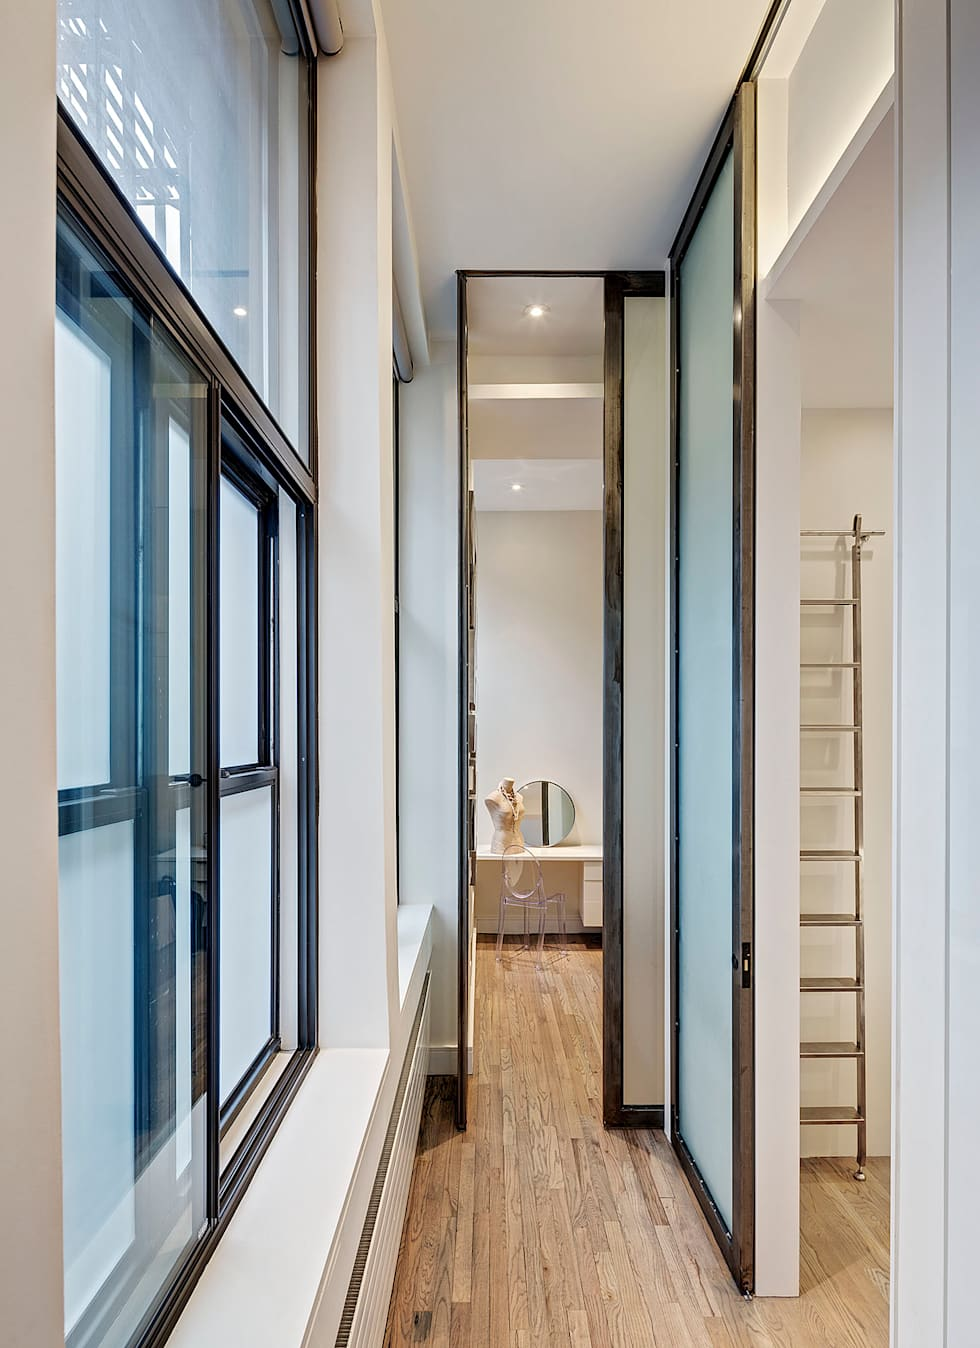 Hallway with Glass and Steel Sliding Panels:  Corridor & hallway by Lilian H. Weinreich Architects